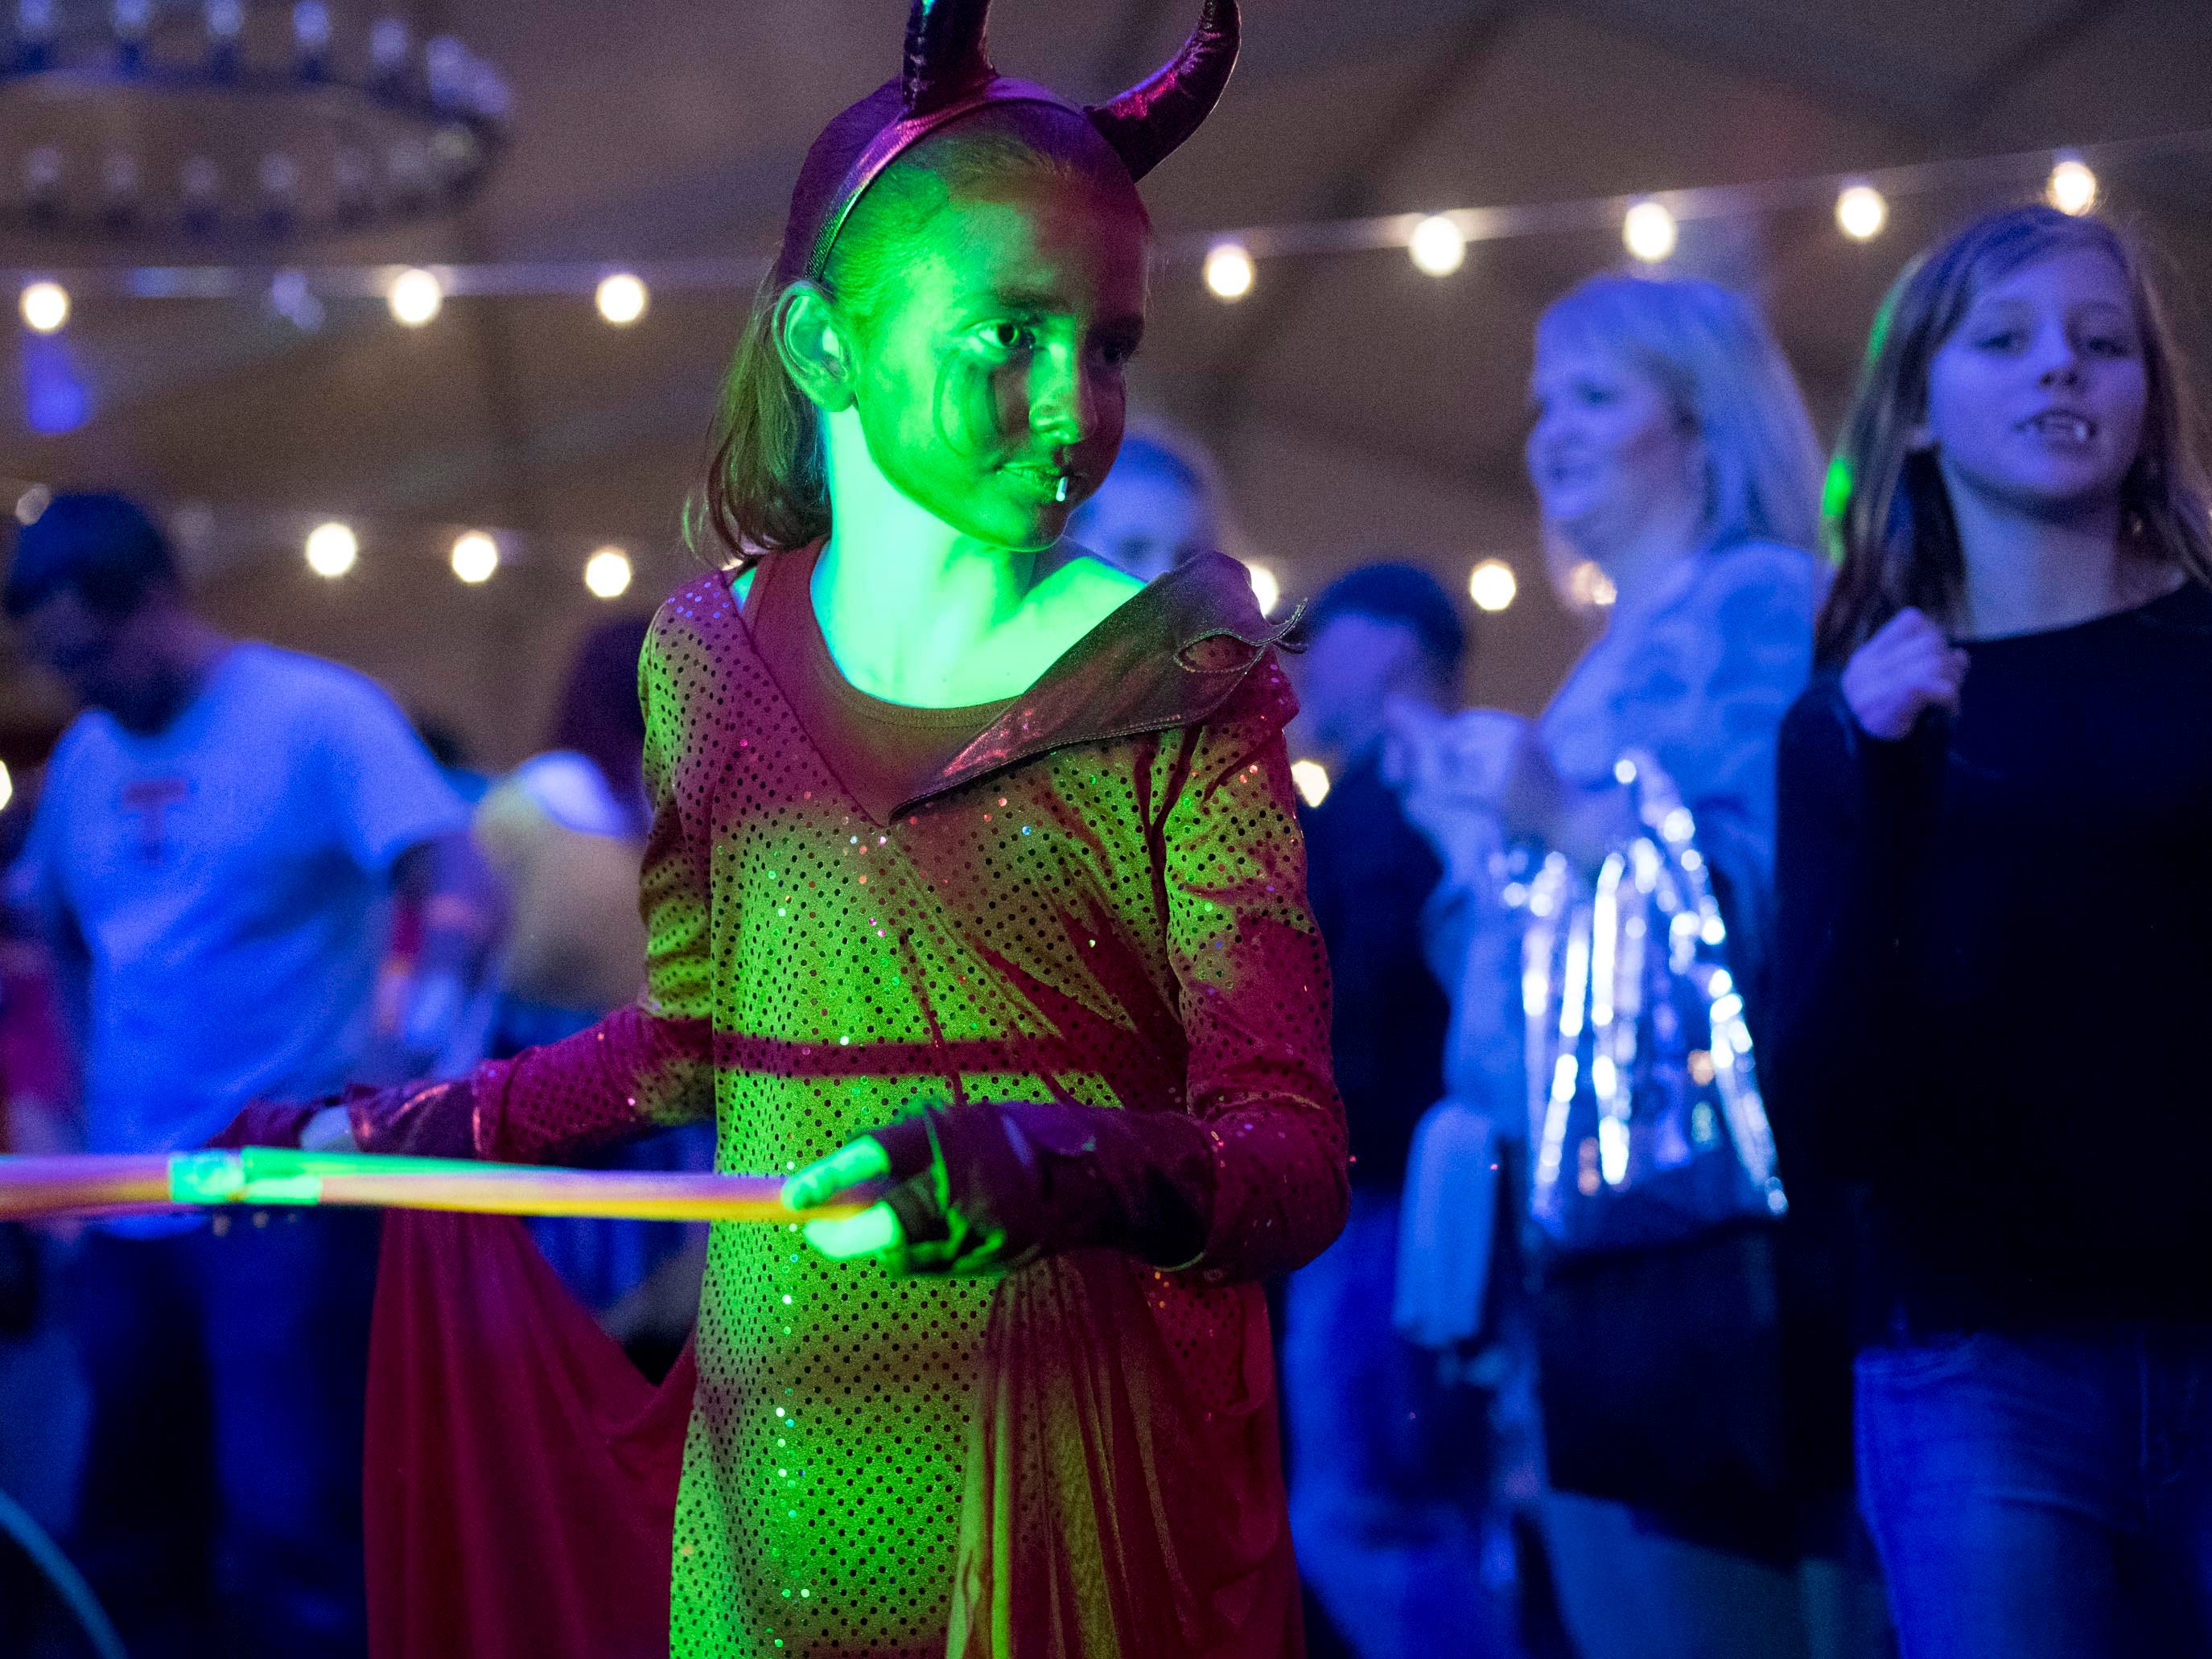 A devil costumed trick-or-treater at the Monster Mash dance party during Boo! at the Zoo on Saturday, October 20, 2018.